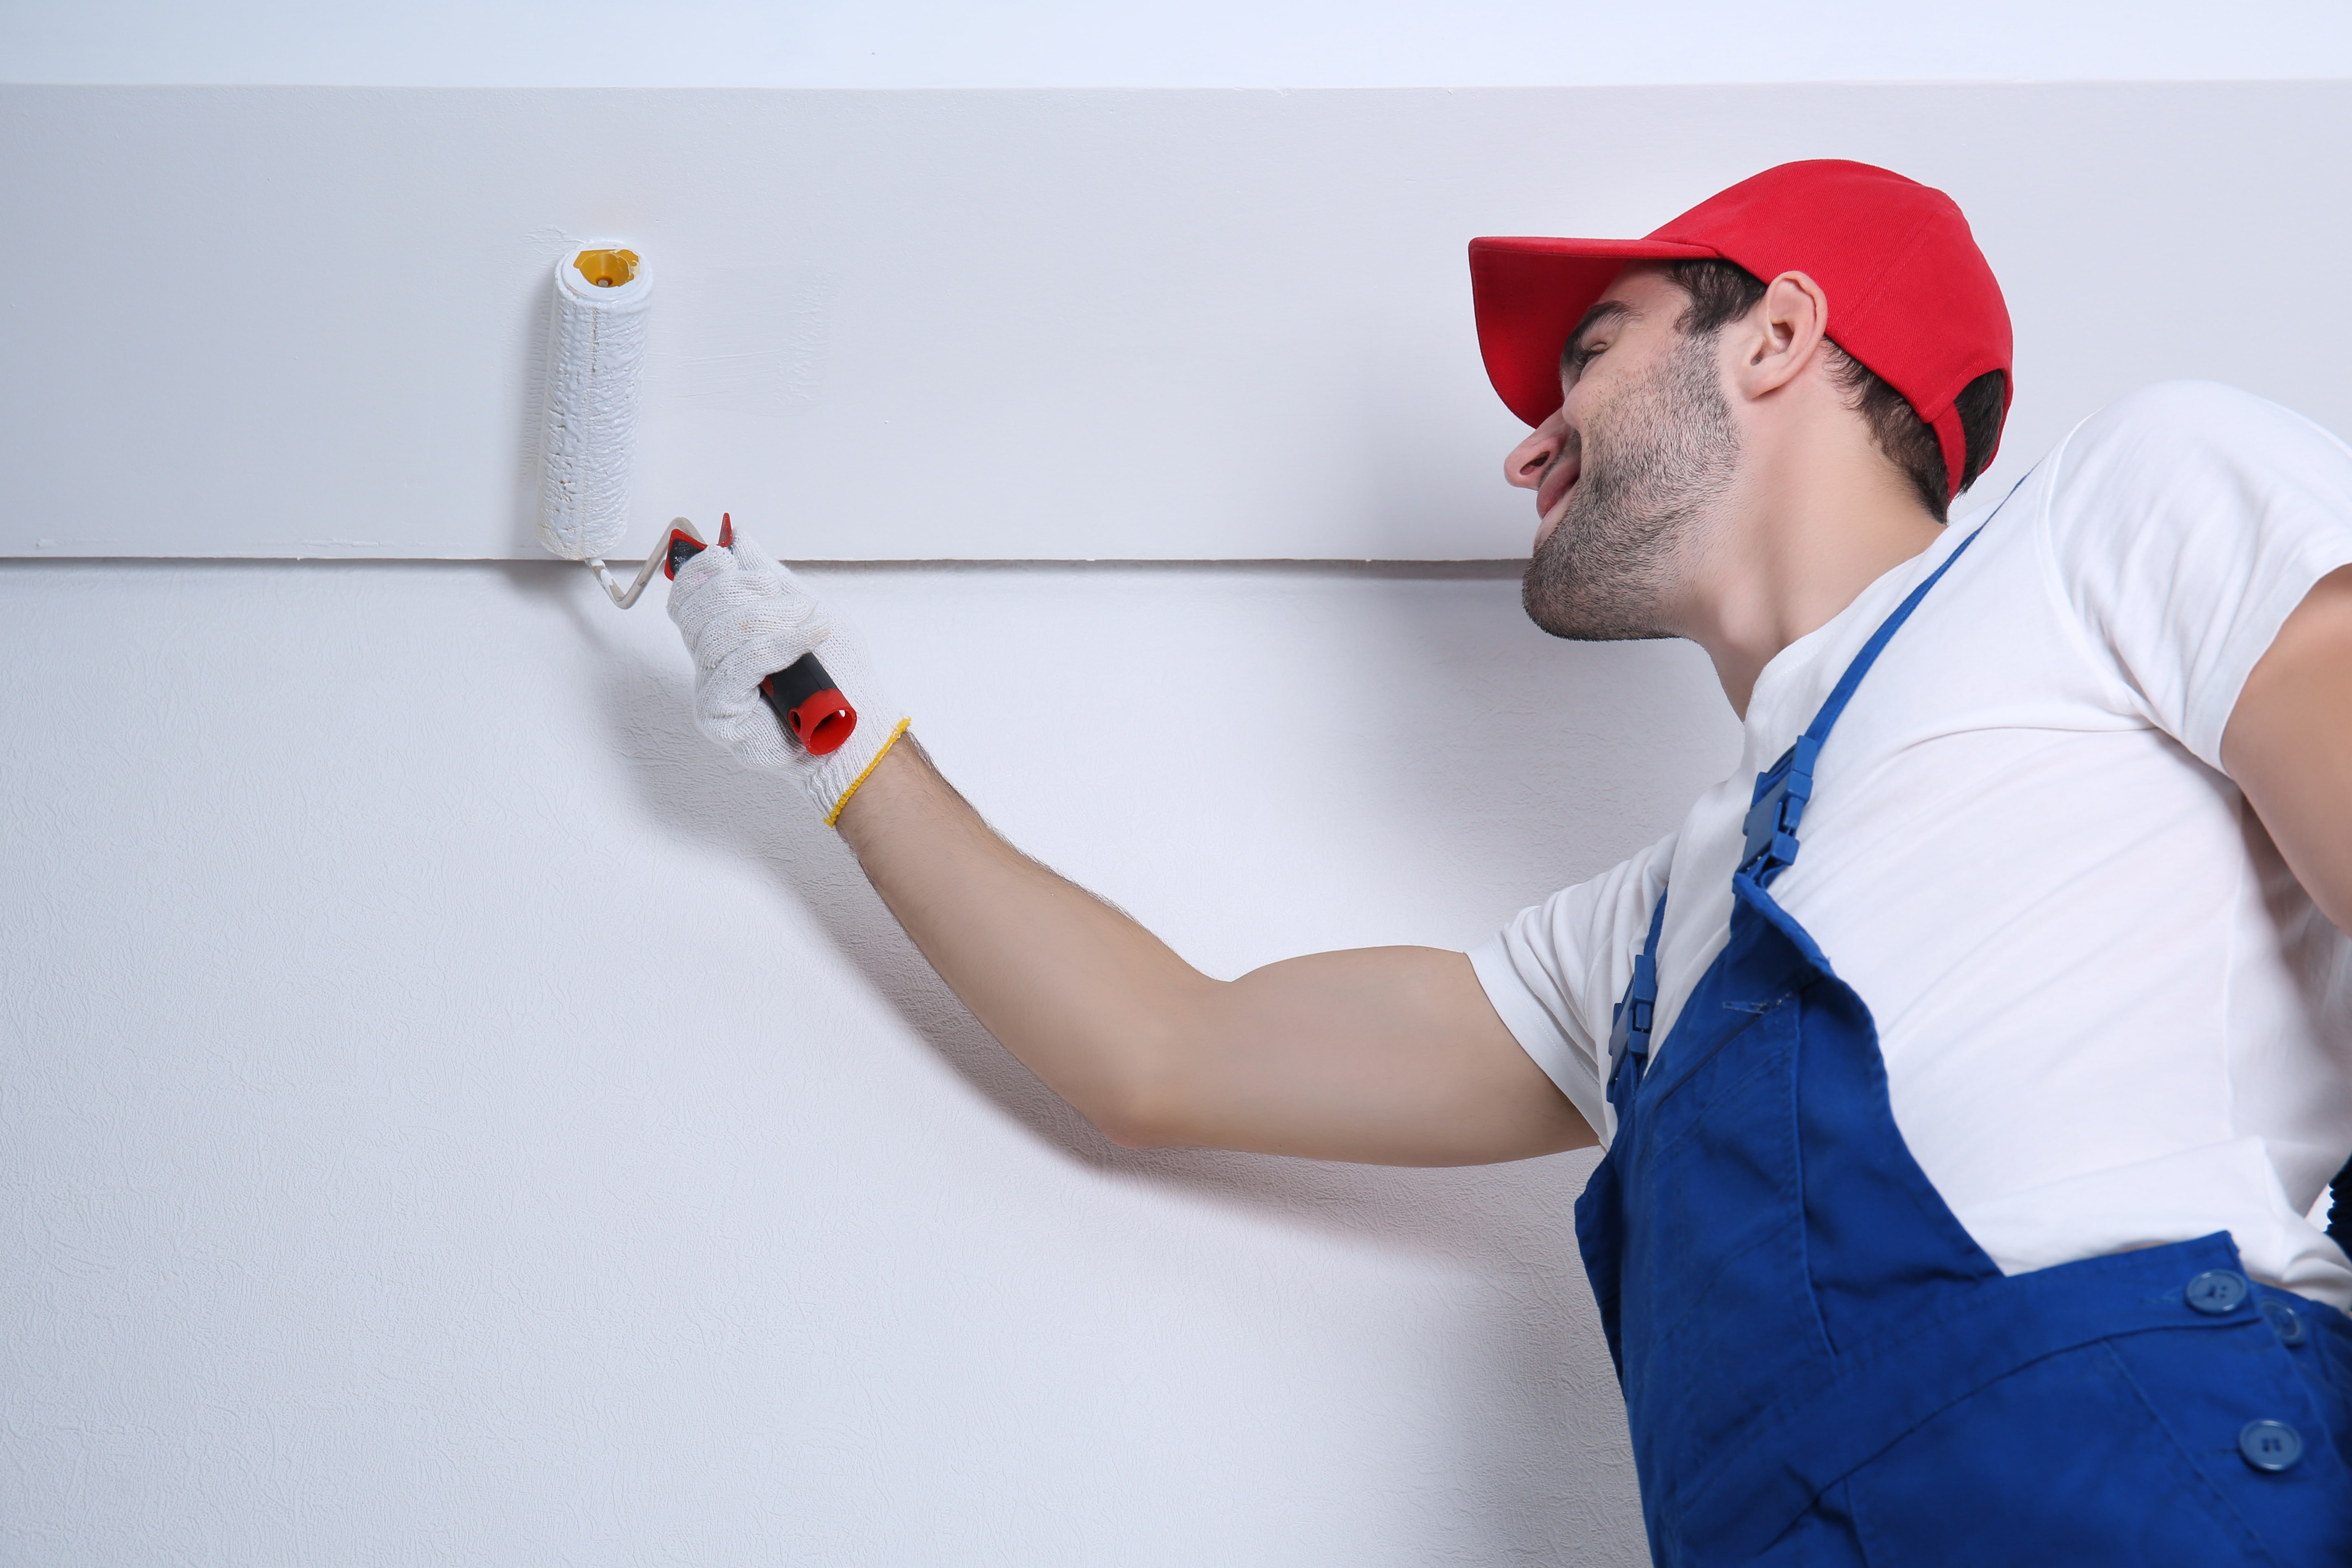 Guy painting the wall